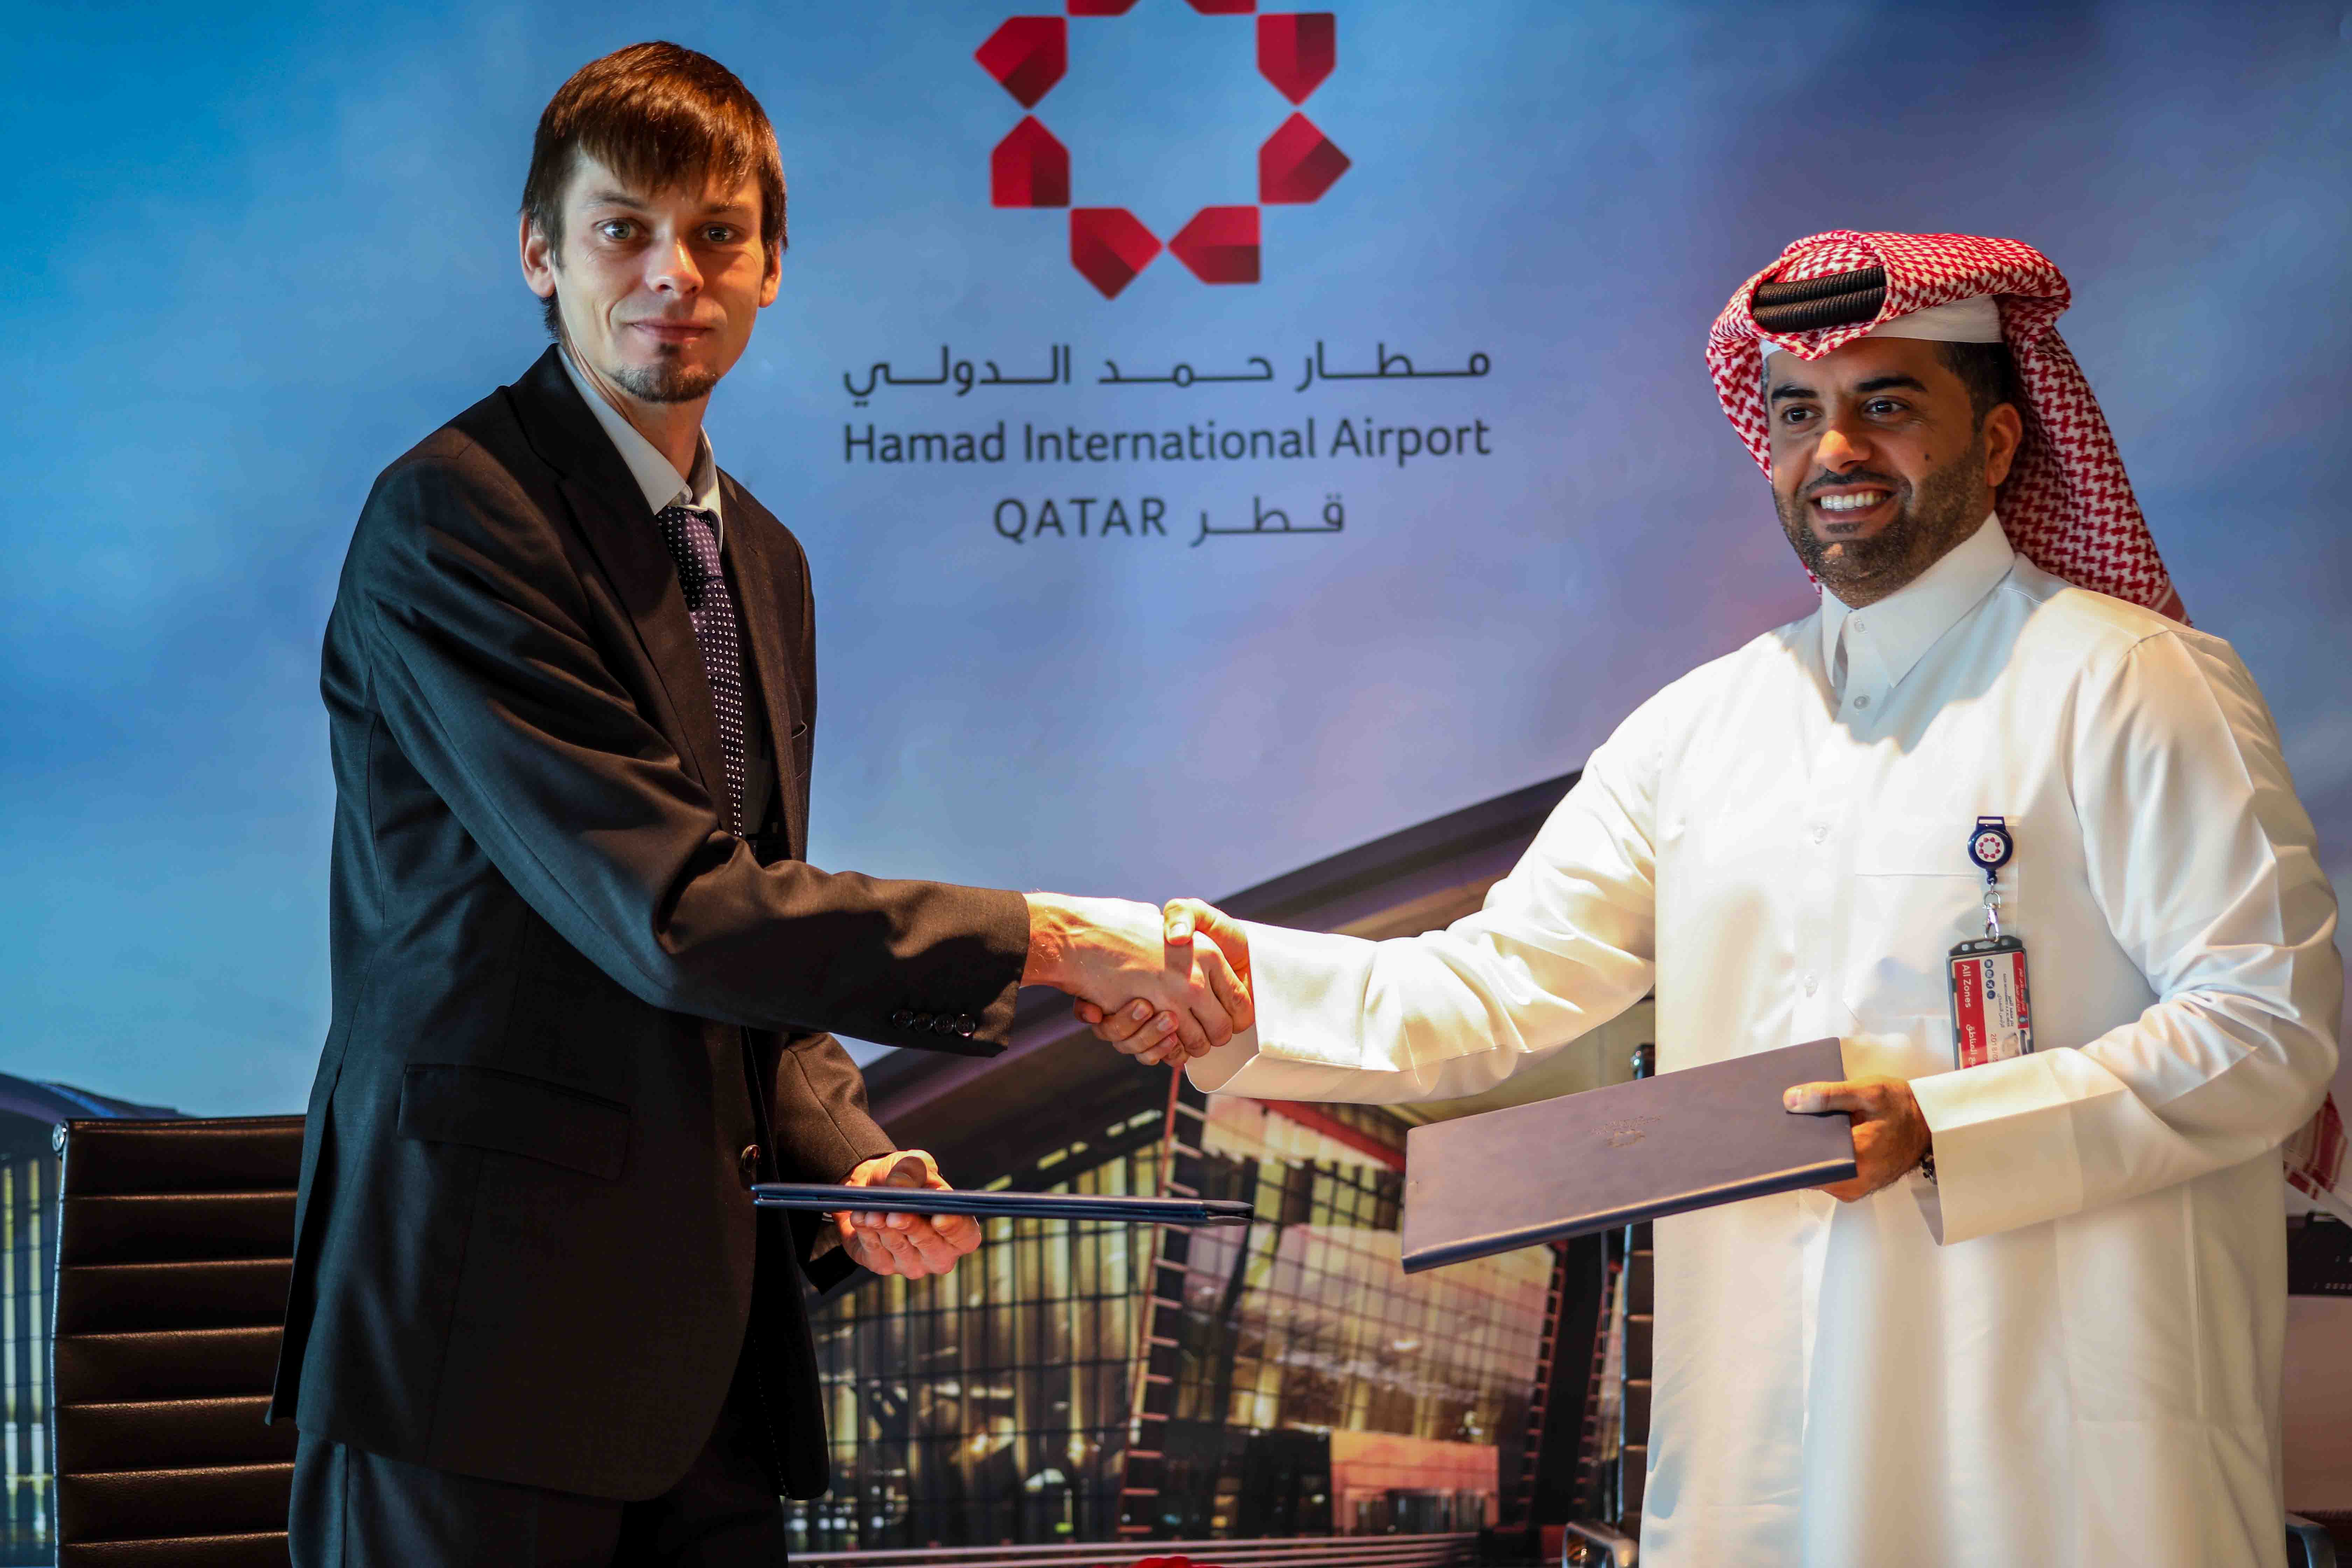 UBIMET is the Official Weather Service Provider of Hamad International Airport